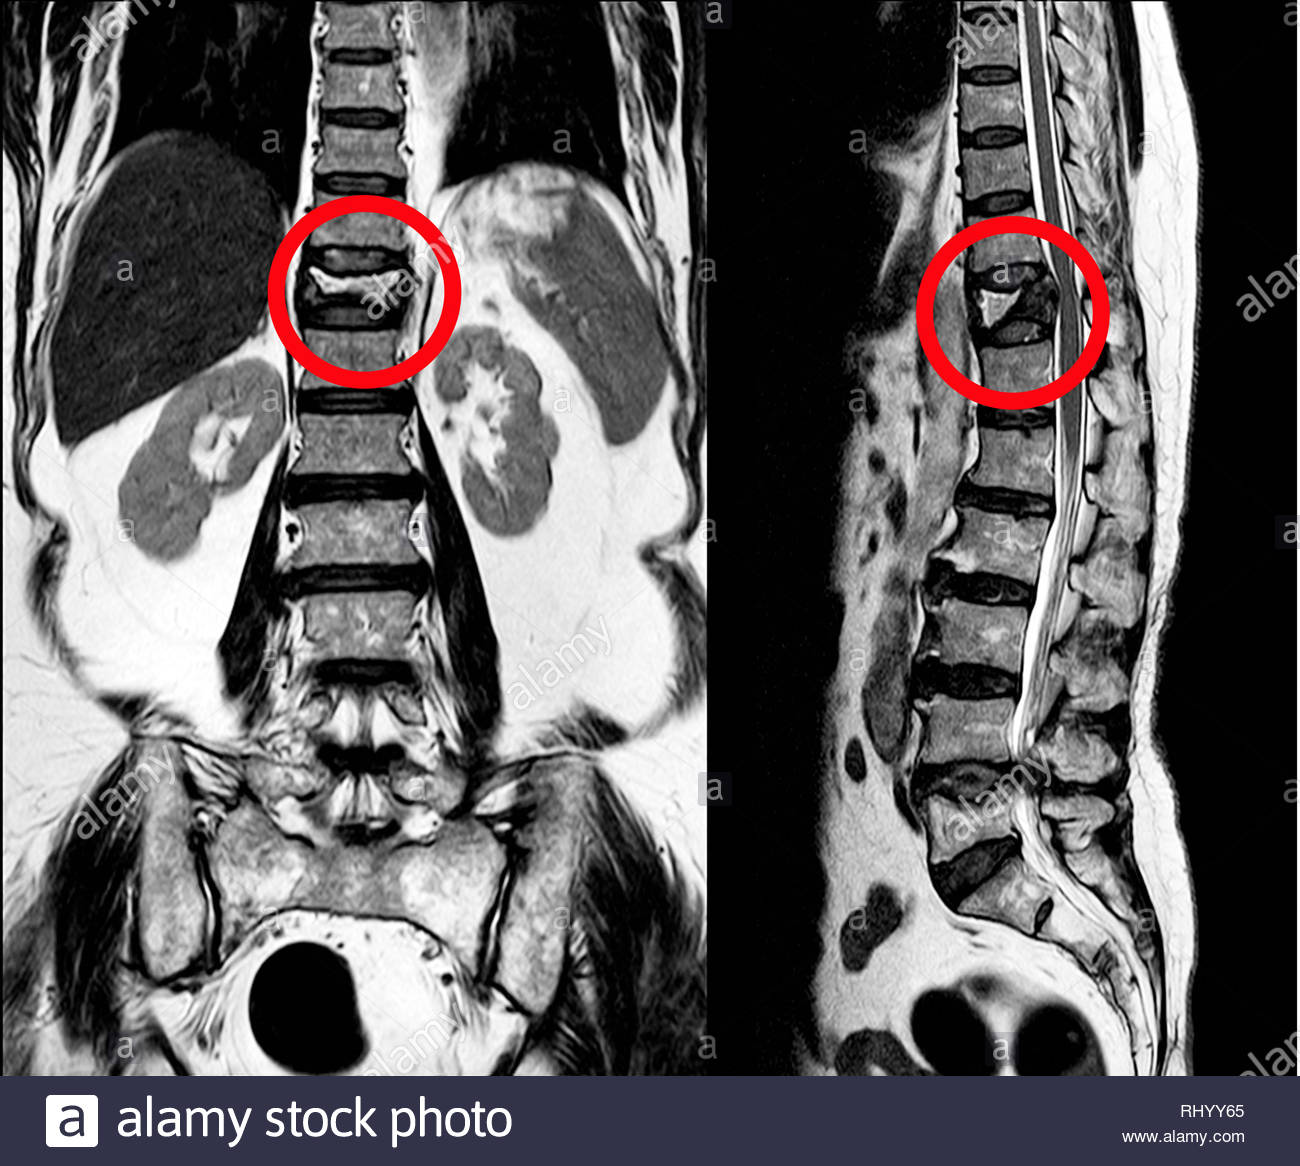 MRI Thoracic lumbar spine show moderate pathological compression fracture of T12 level. - Stock Image